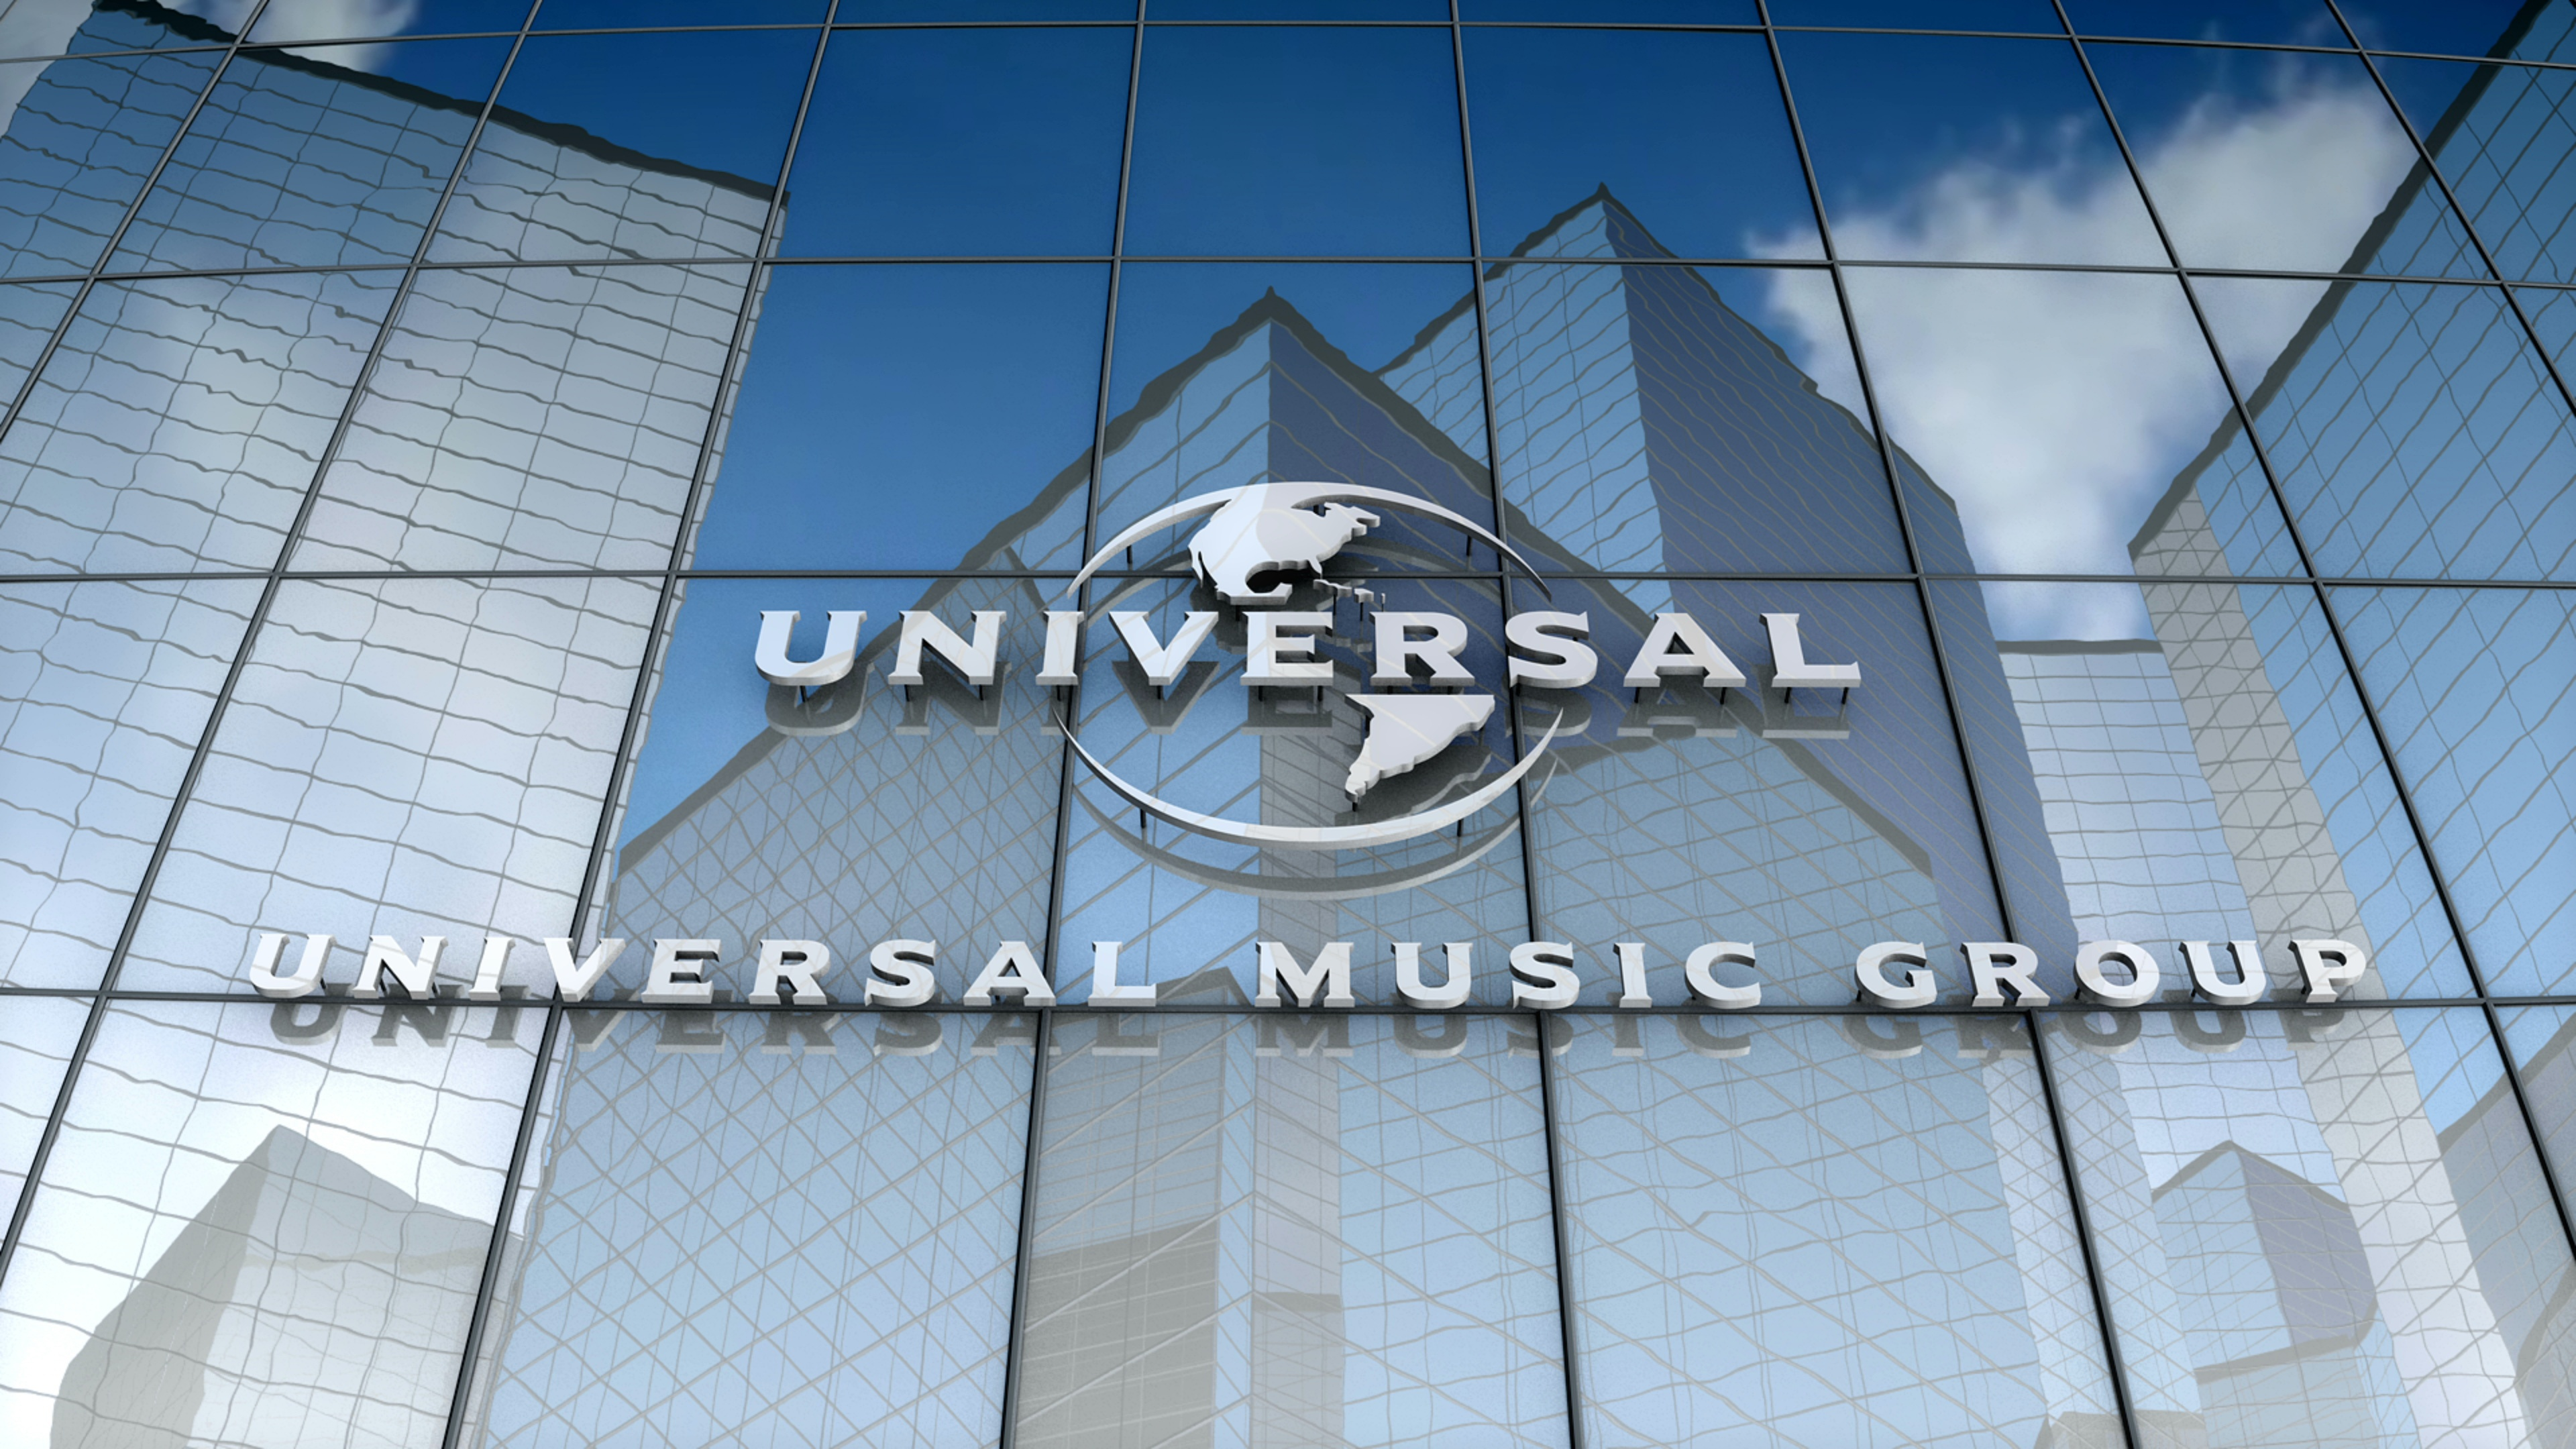 China's Tencent Bids To Buy Up Significant Stake In Universal Music